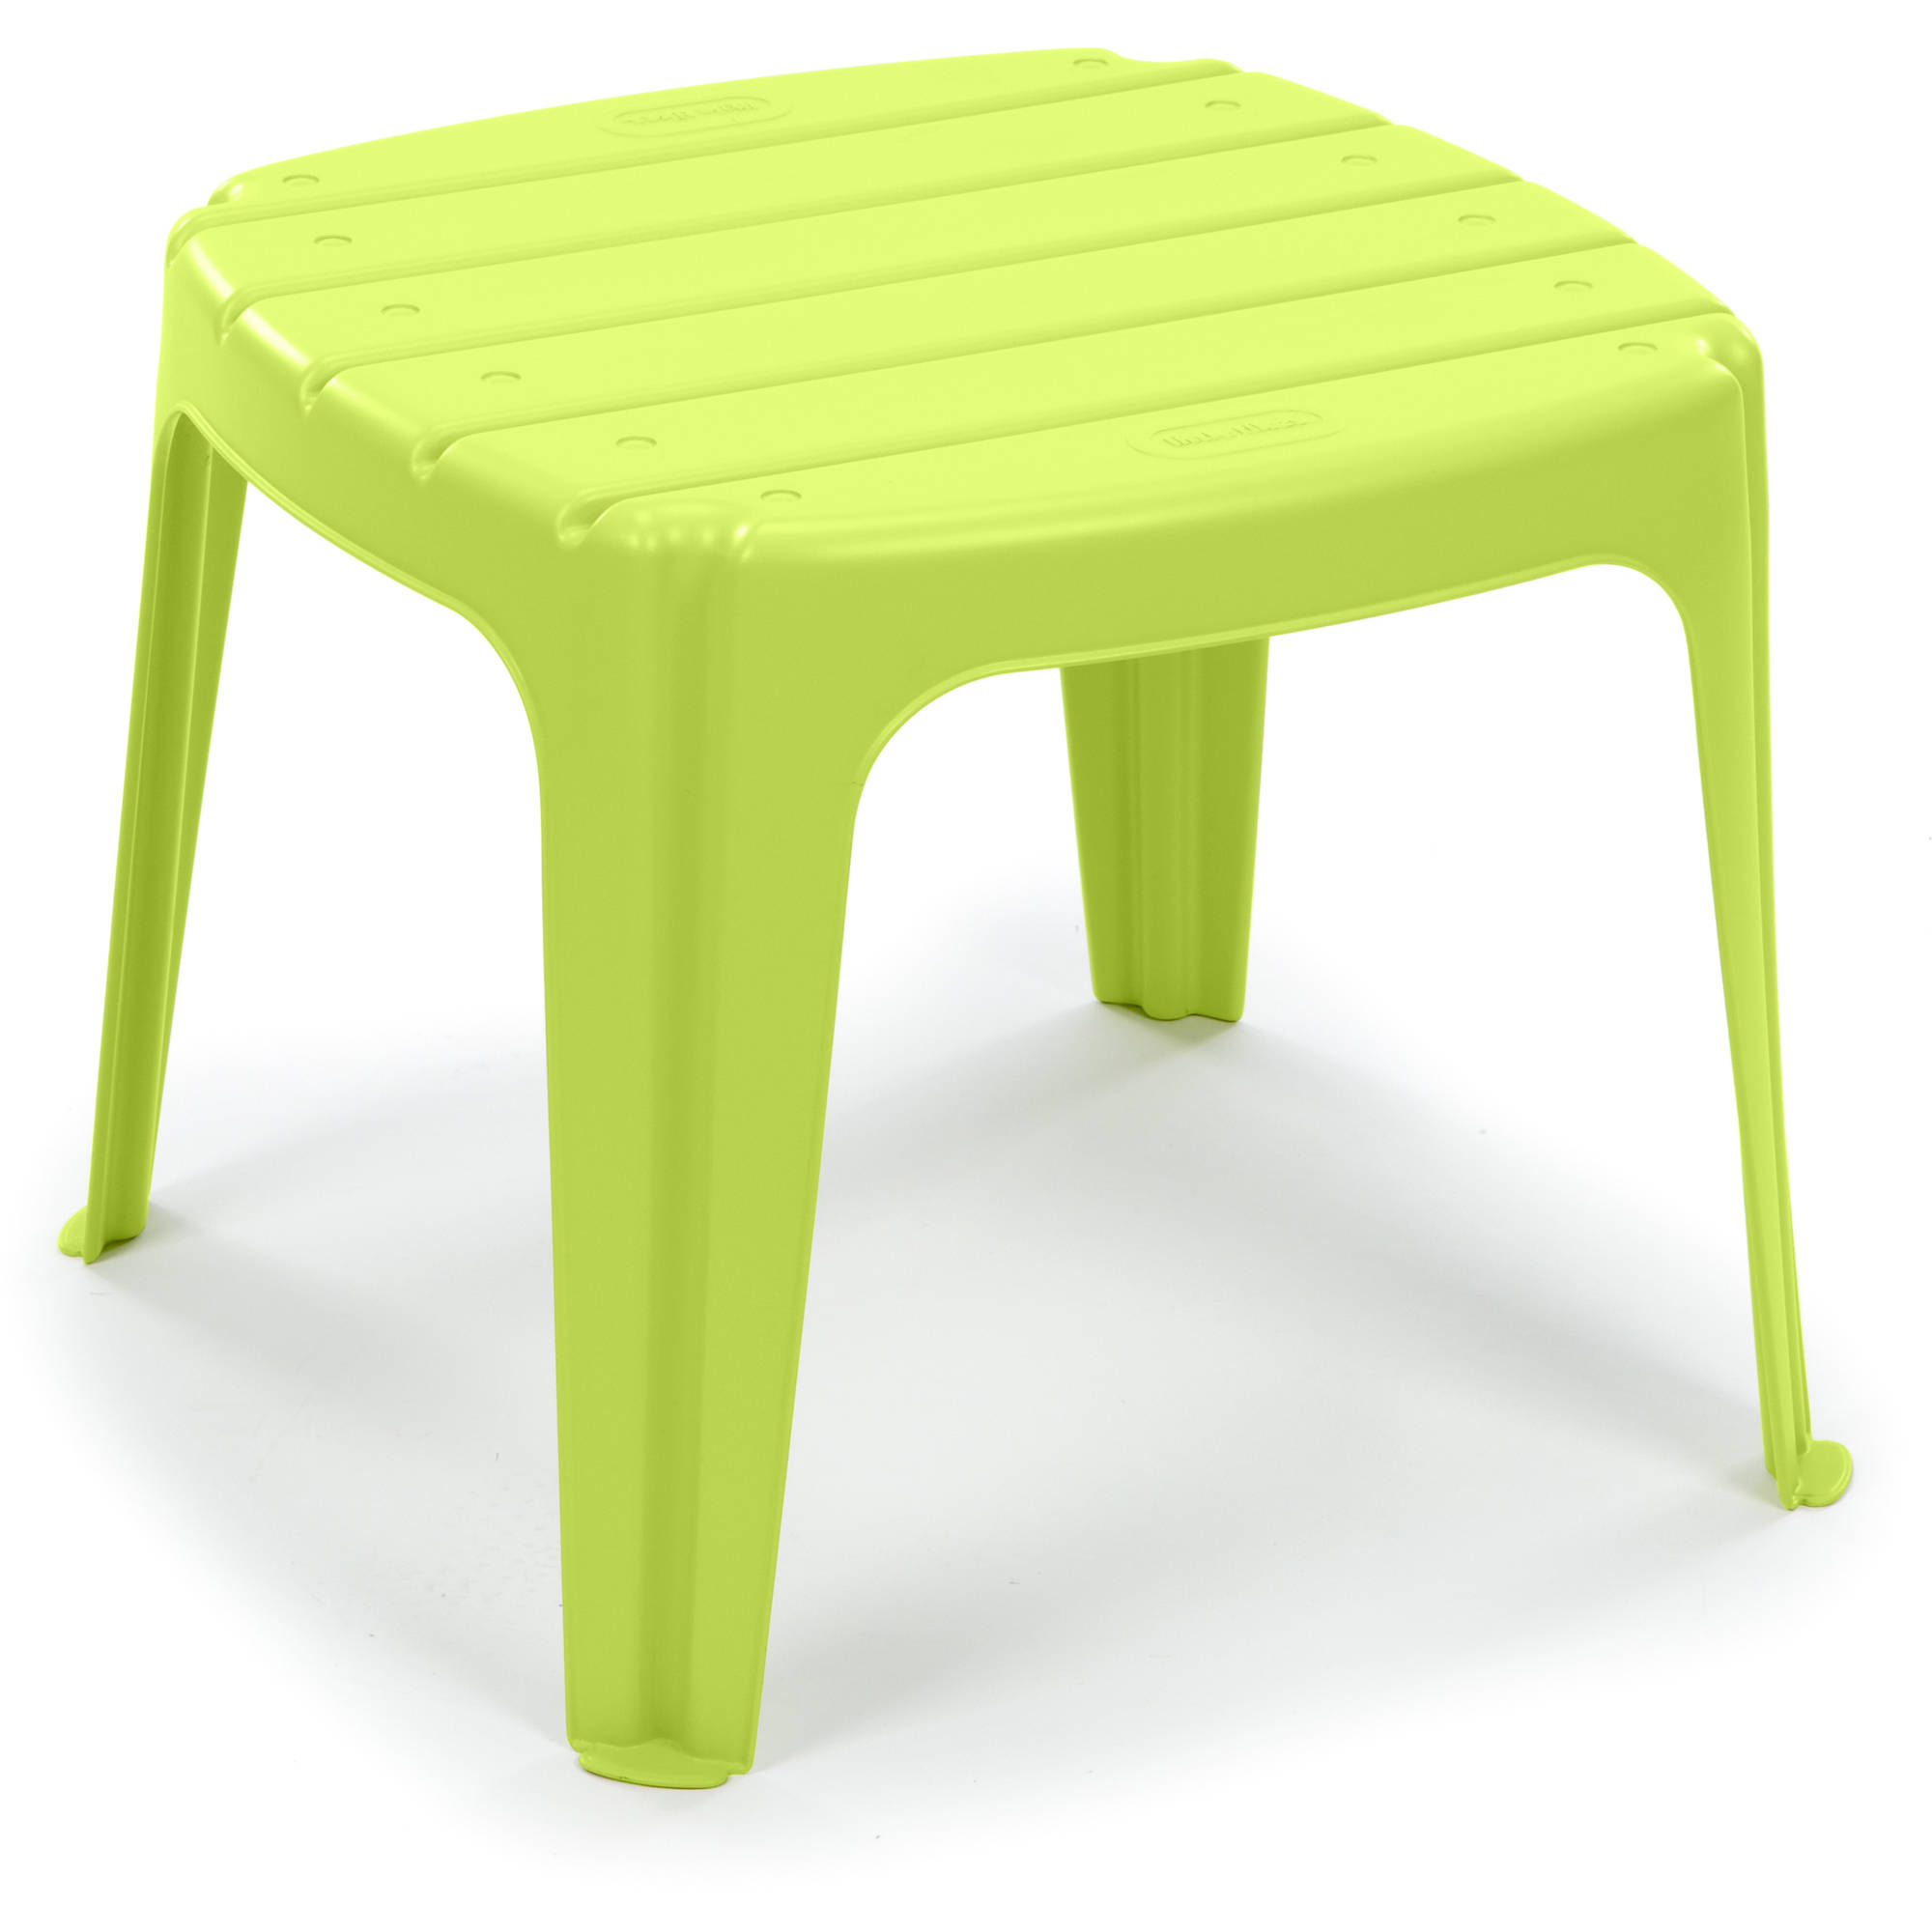 Details About Table For Kids Indoor Outdoor Garden Easy Clean Home Camping Learn Plastic Green